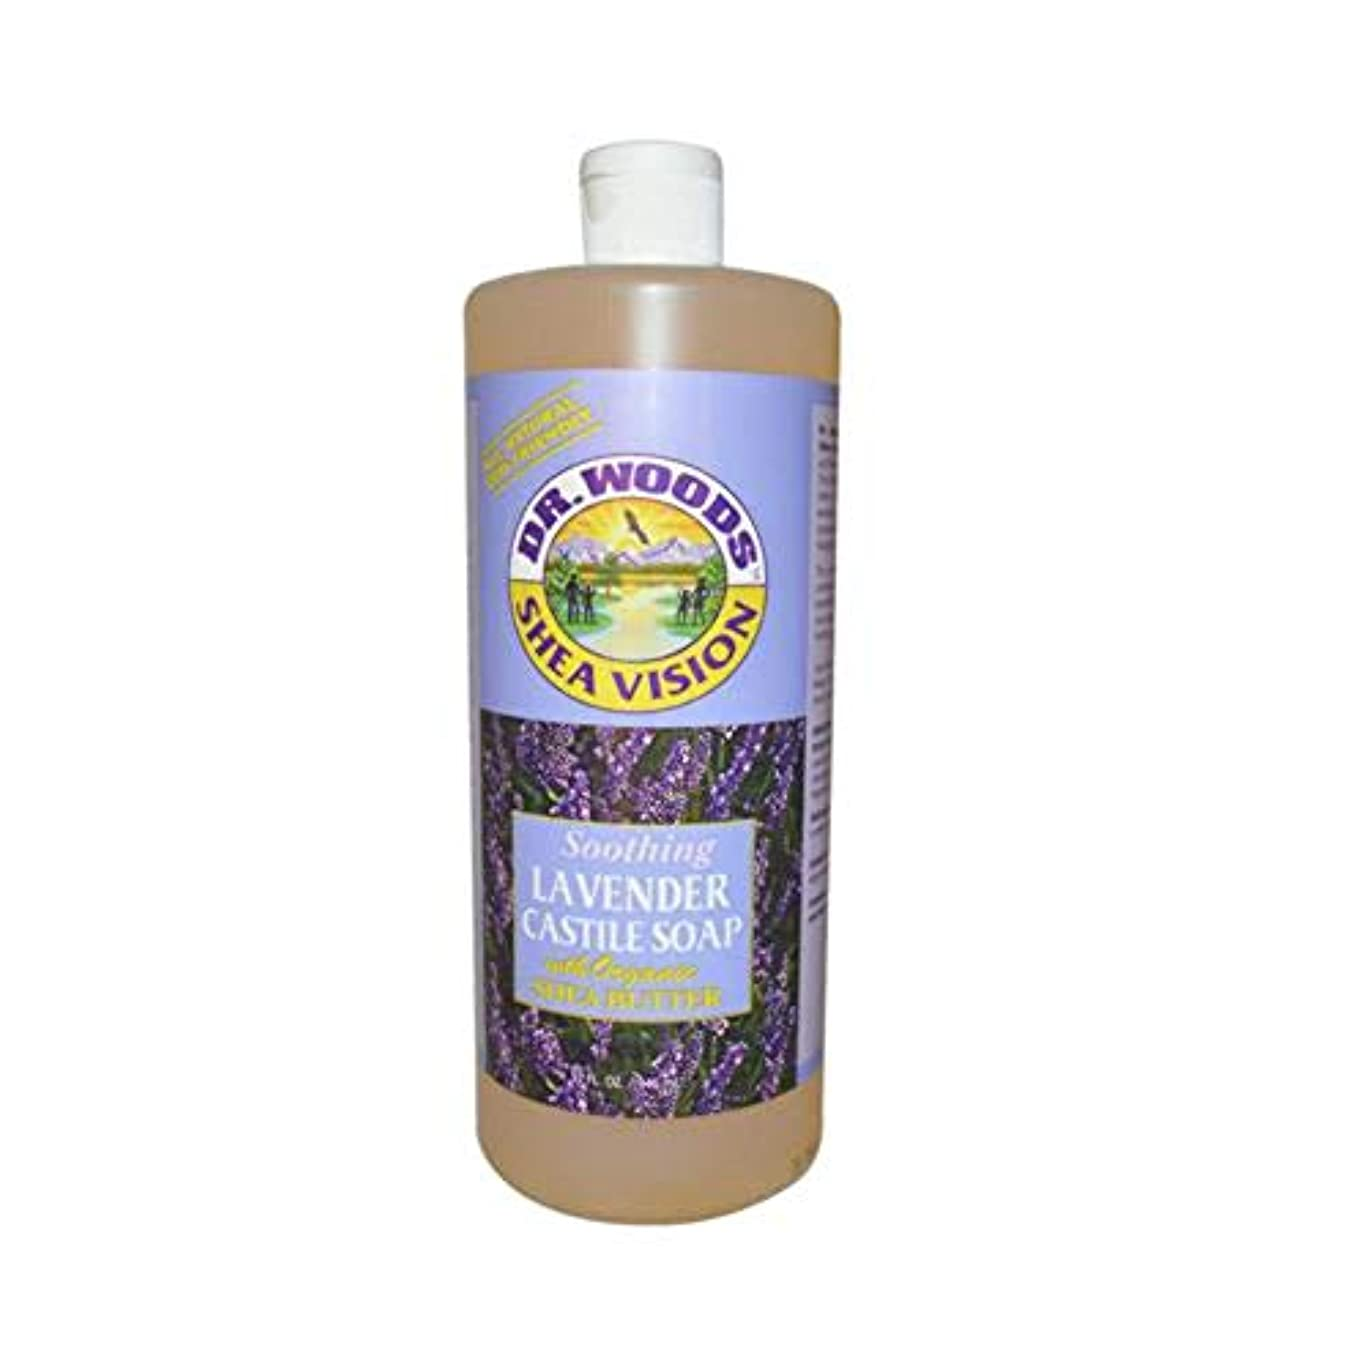 冷凍庫プロフィール暖かさDr. Woods, Shea Vision, Soothing Lavender Castile Soap, 32 fl oz (946 ml)